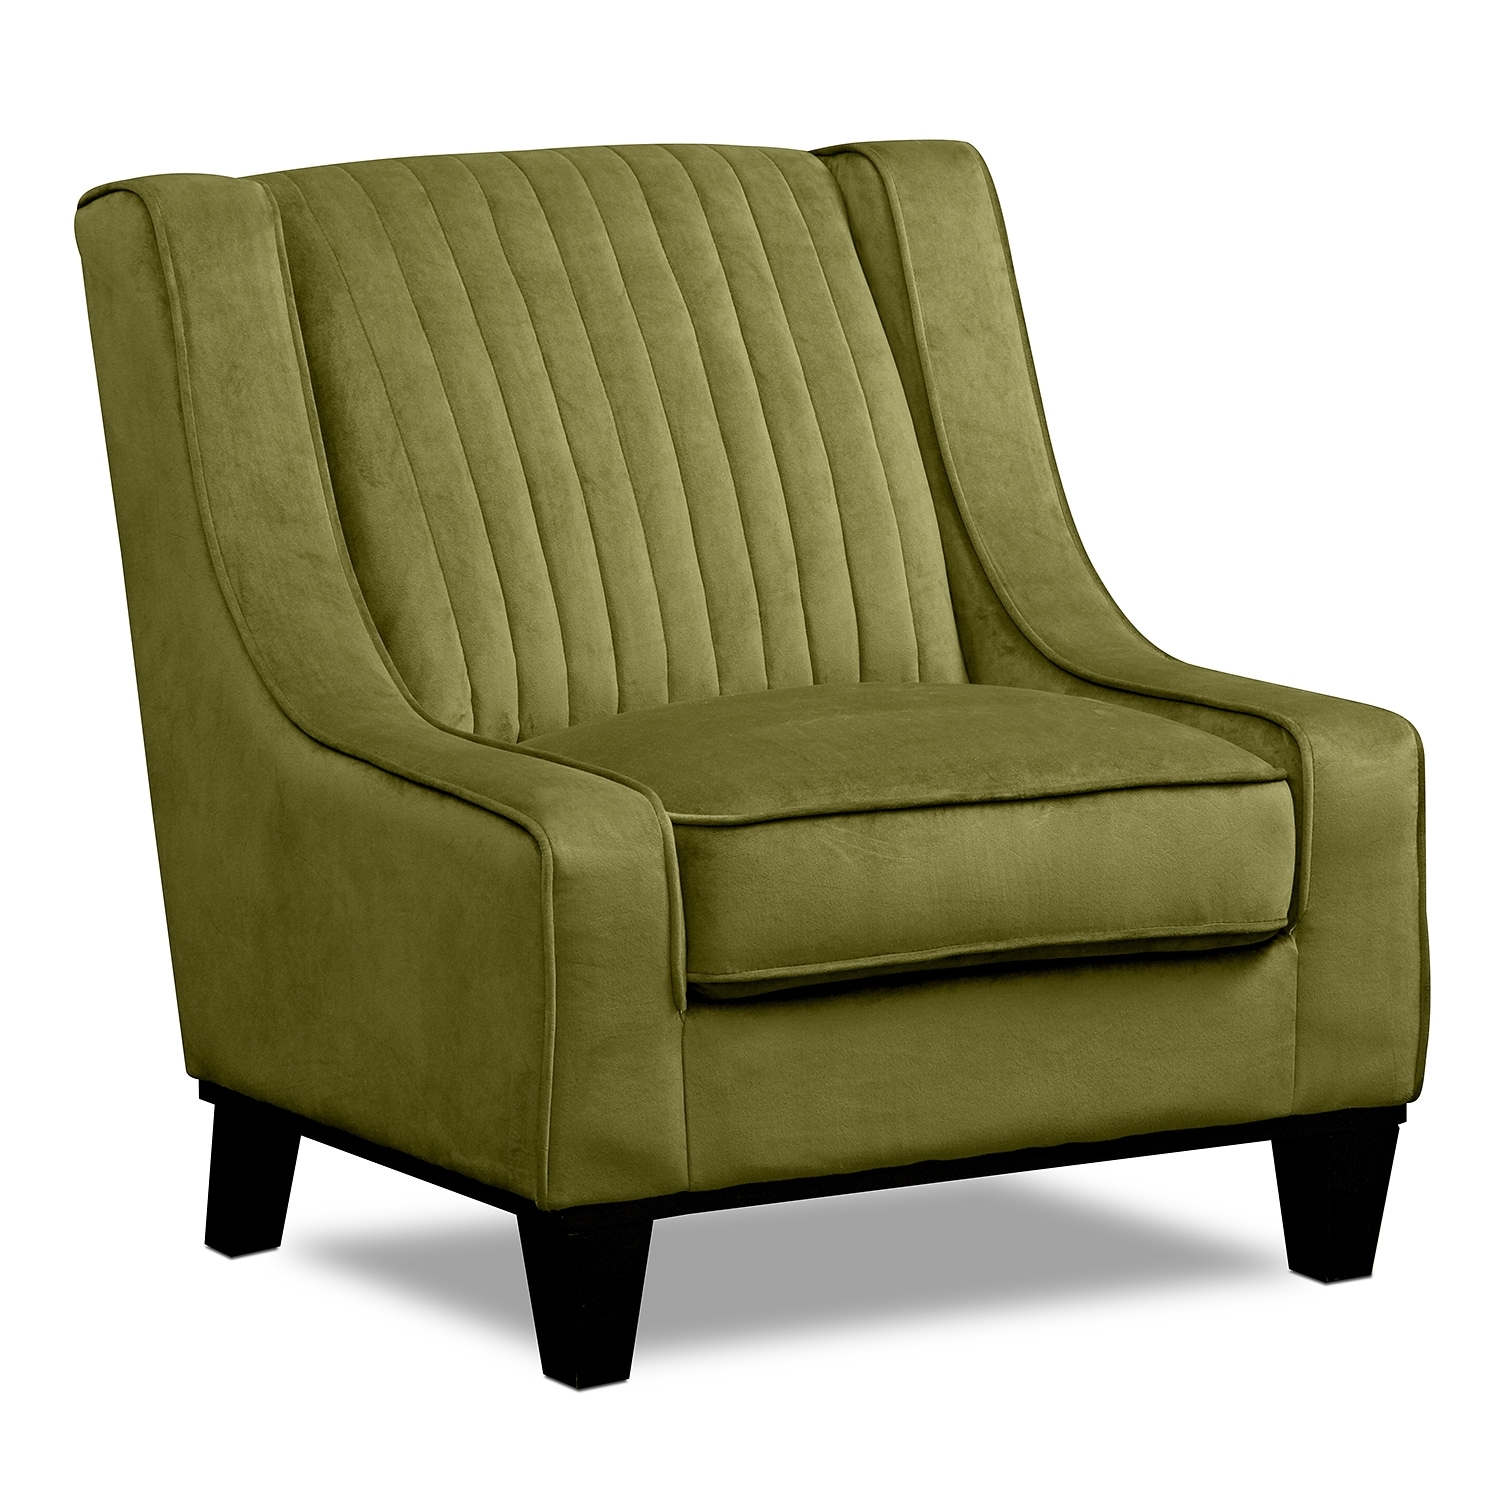 value city furniture accent chairs chair cover rentals in atlanta ga nouveau upholstery